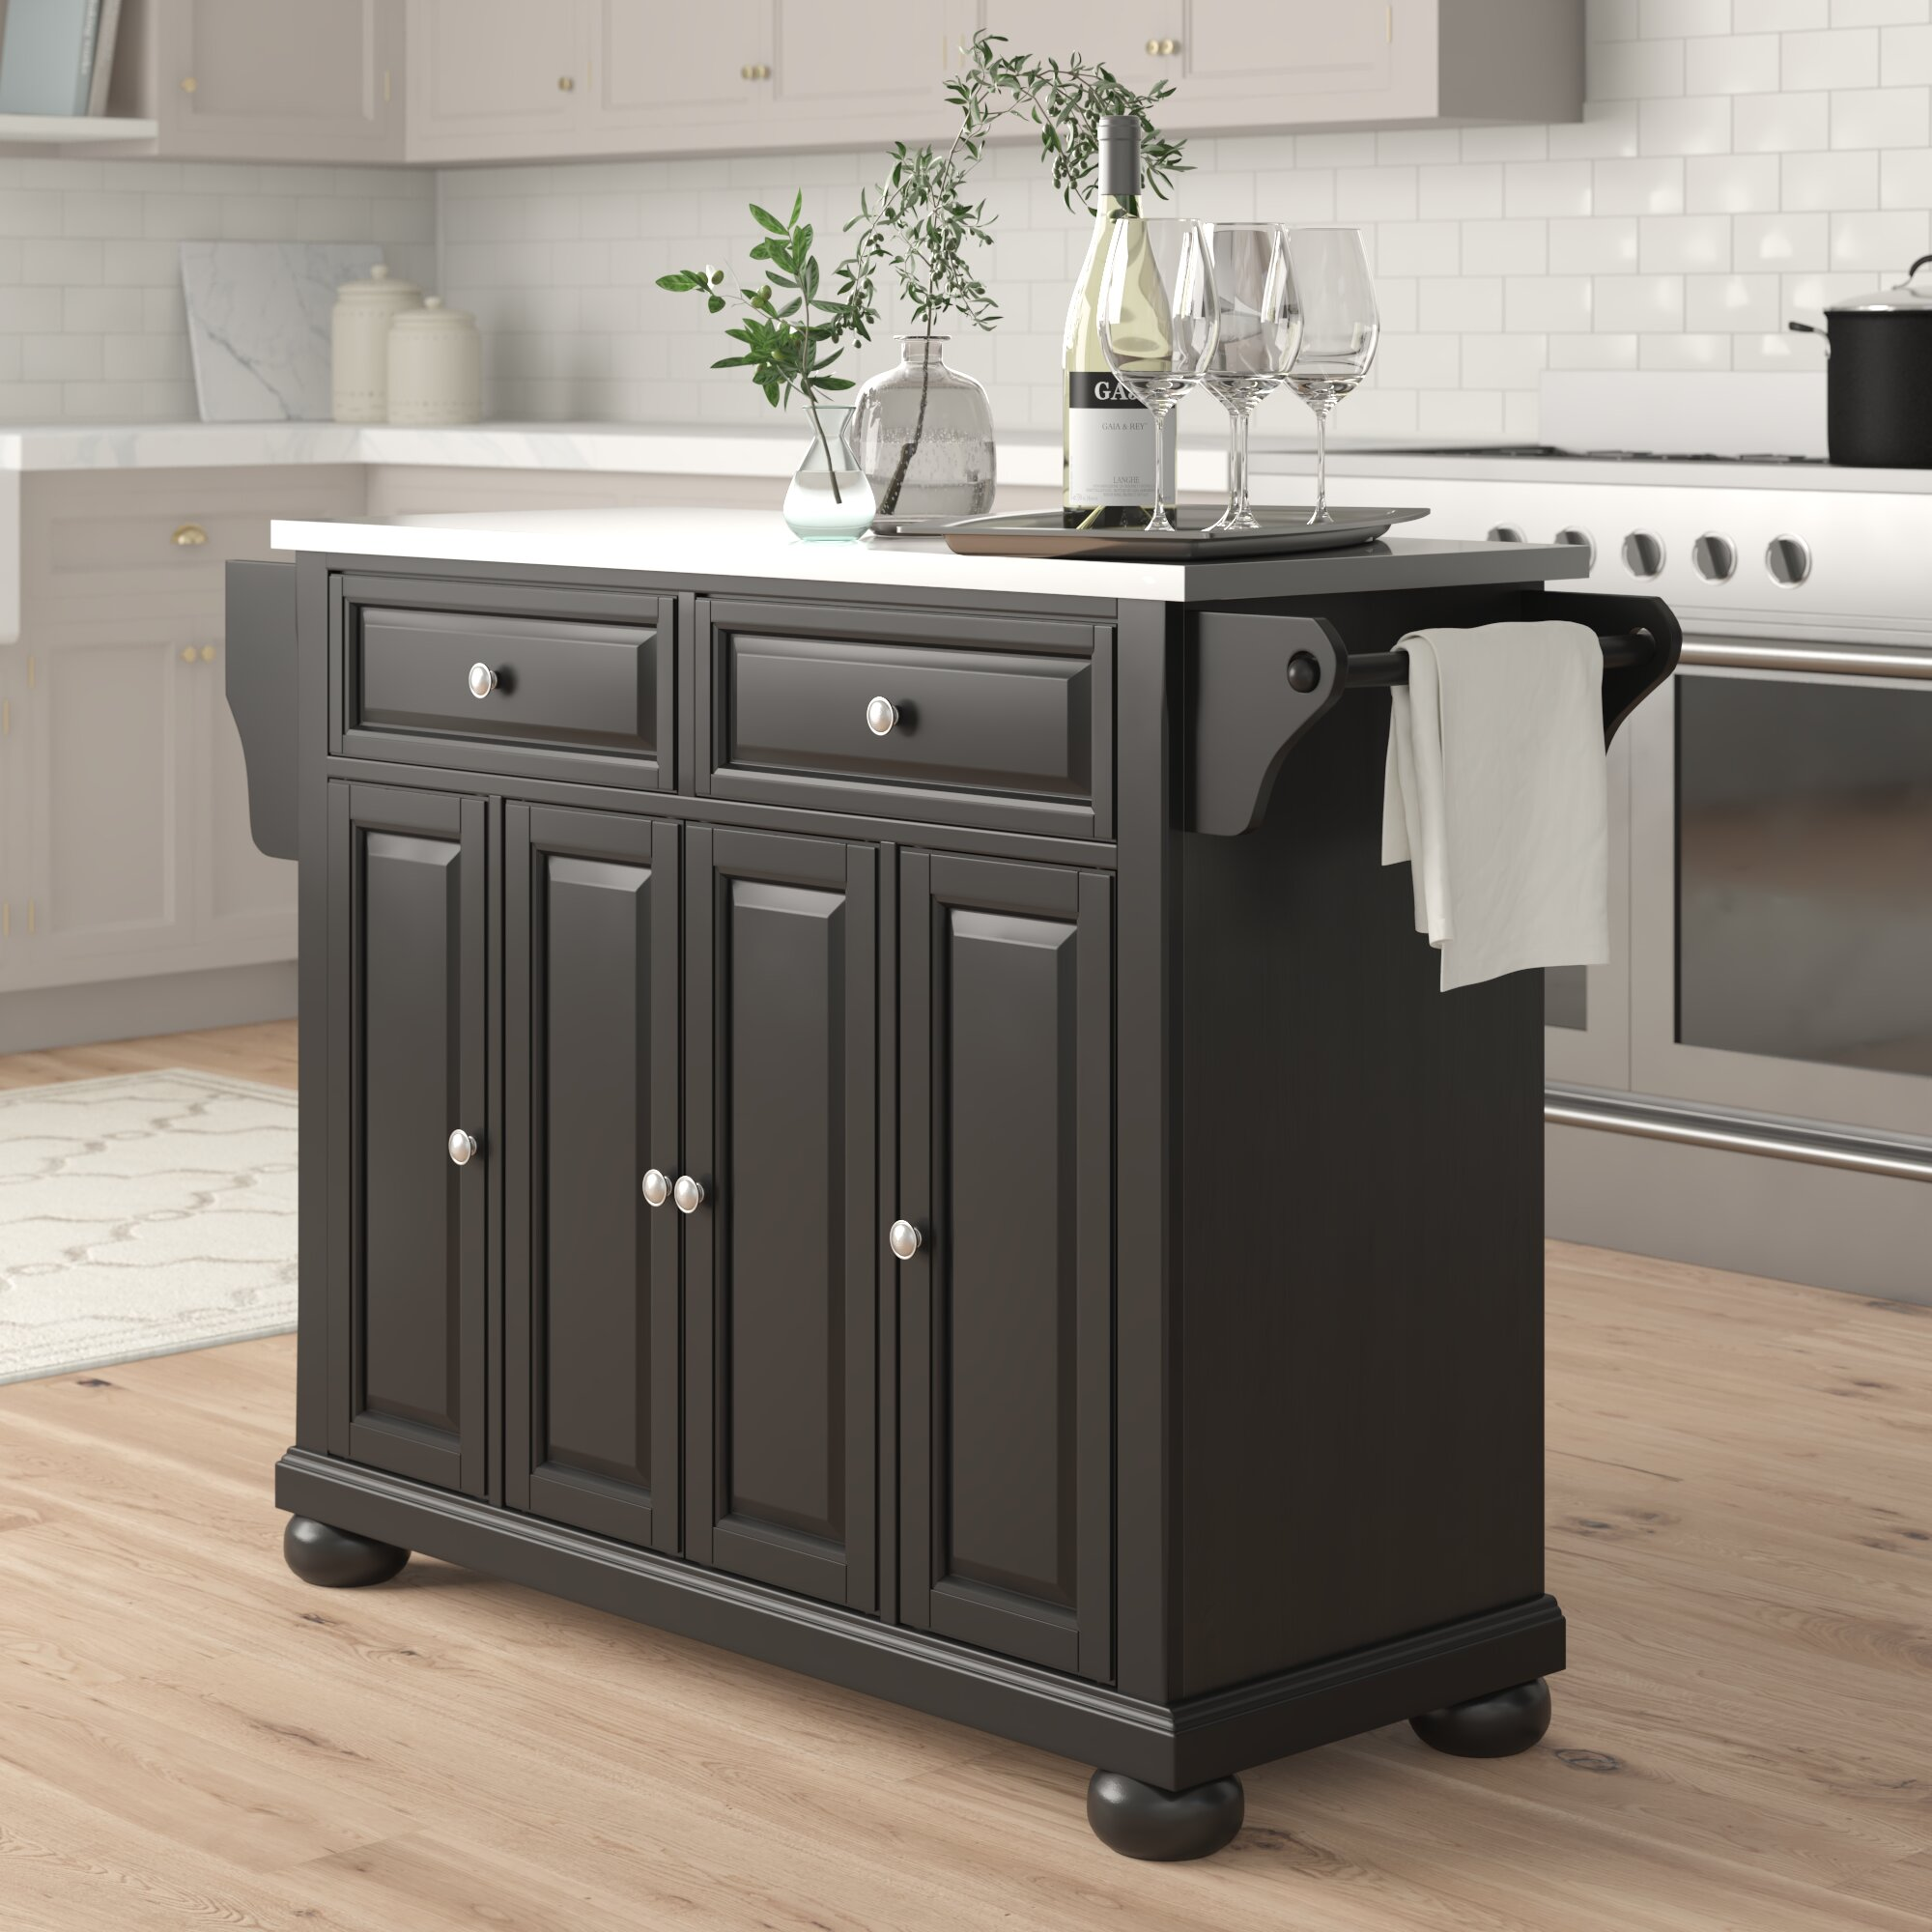 Kitchen Islands & Carts  Up to 5% Off Through 5/5  Wayfair